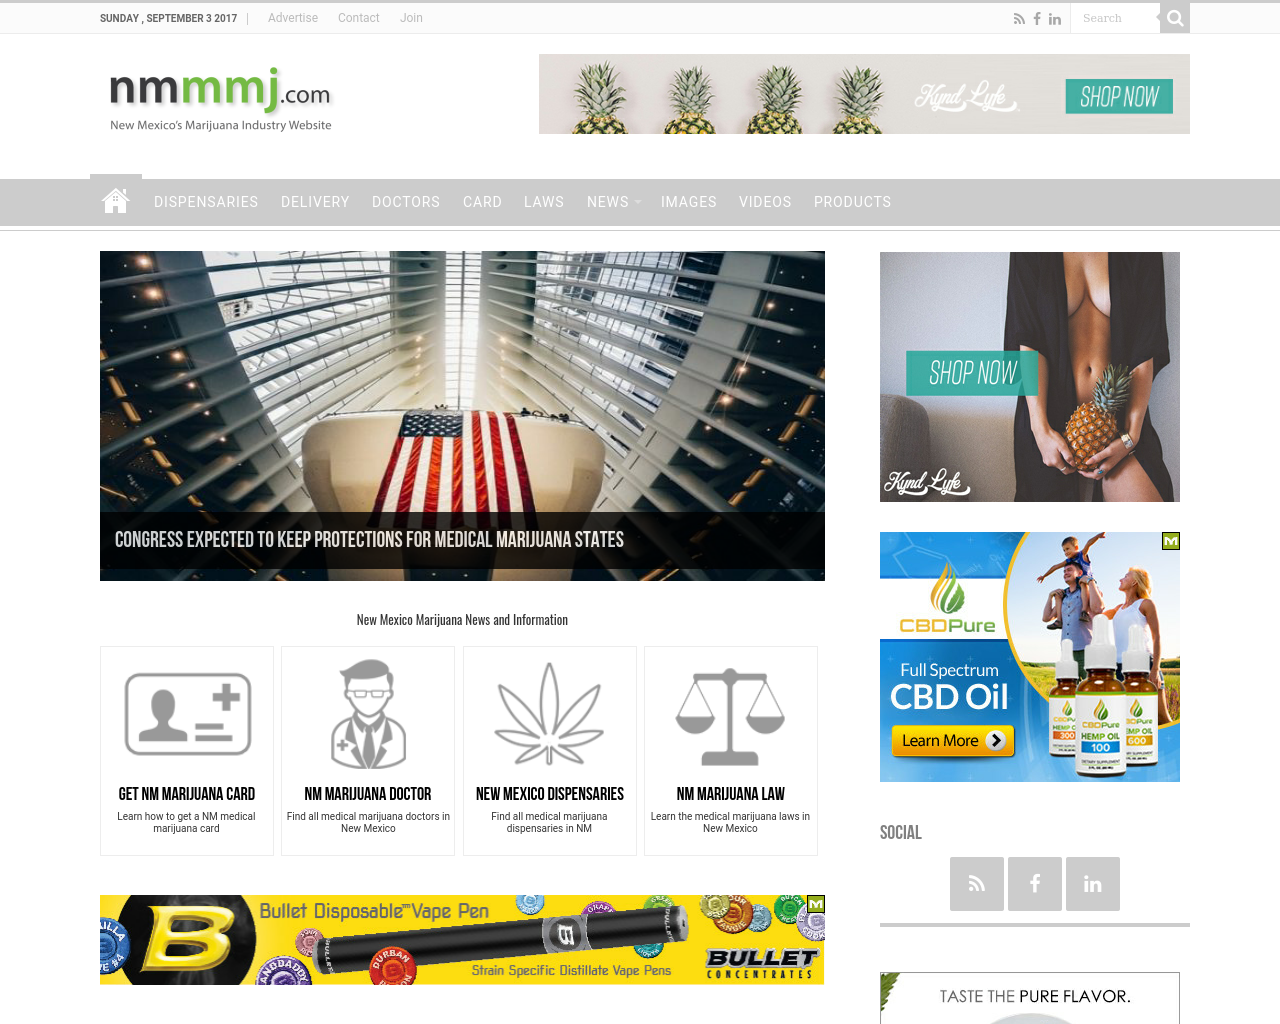 New-Mexico's-Medical-Marijuana-Industry-Website-Advertising-Reviews-Pricing